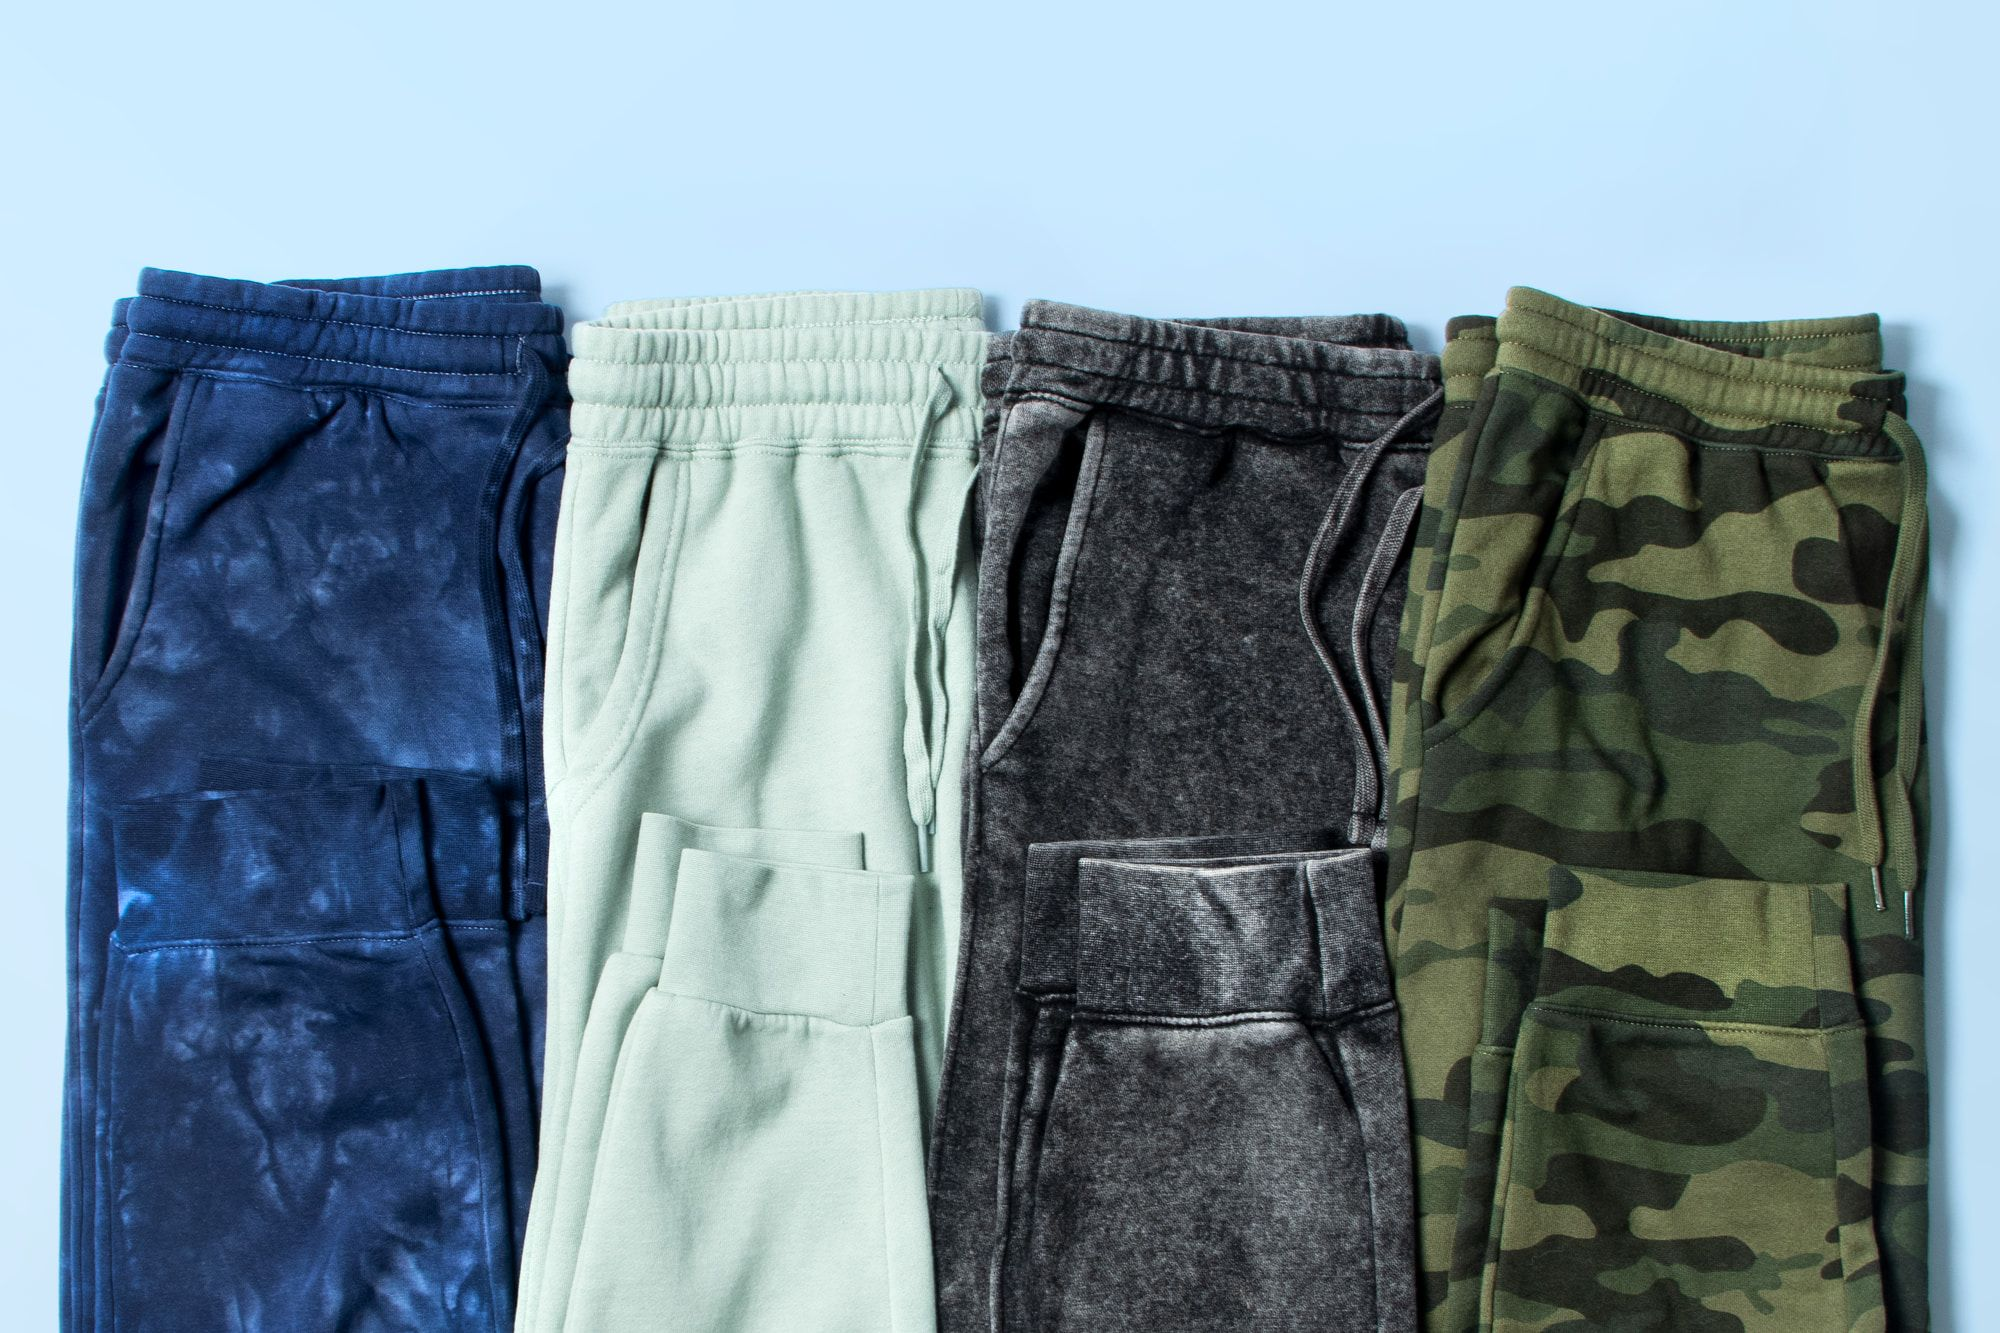 A close up image showing example of cuffed sweatpants.